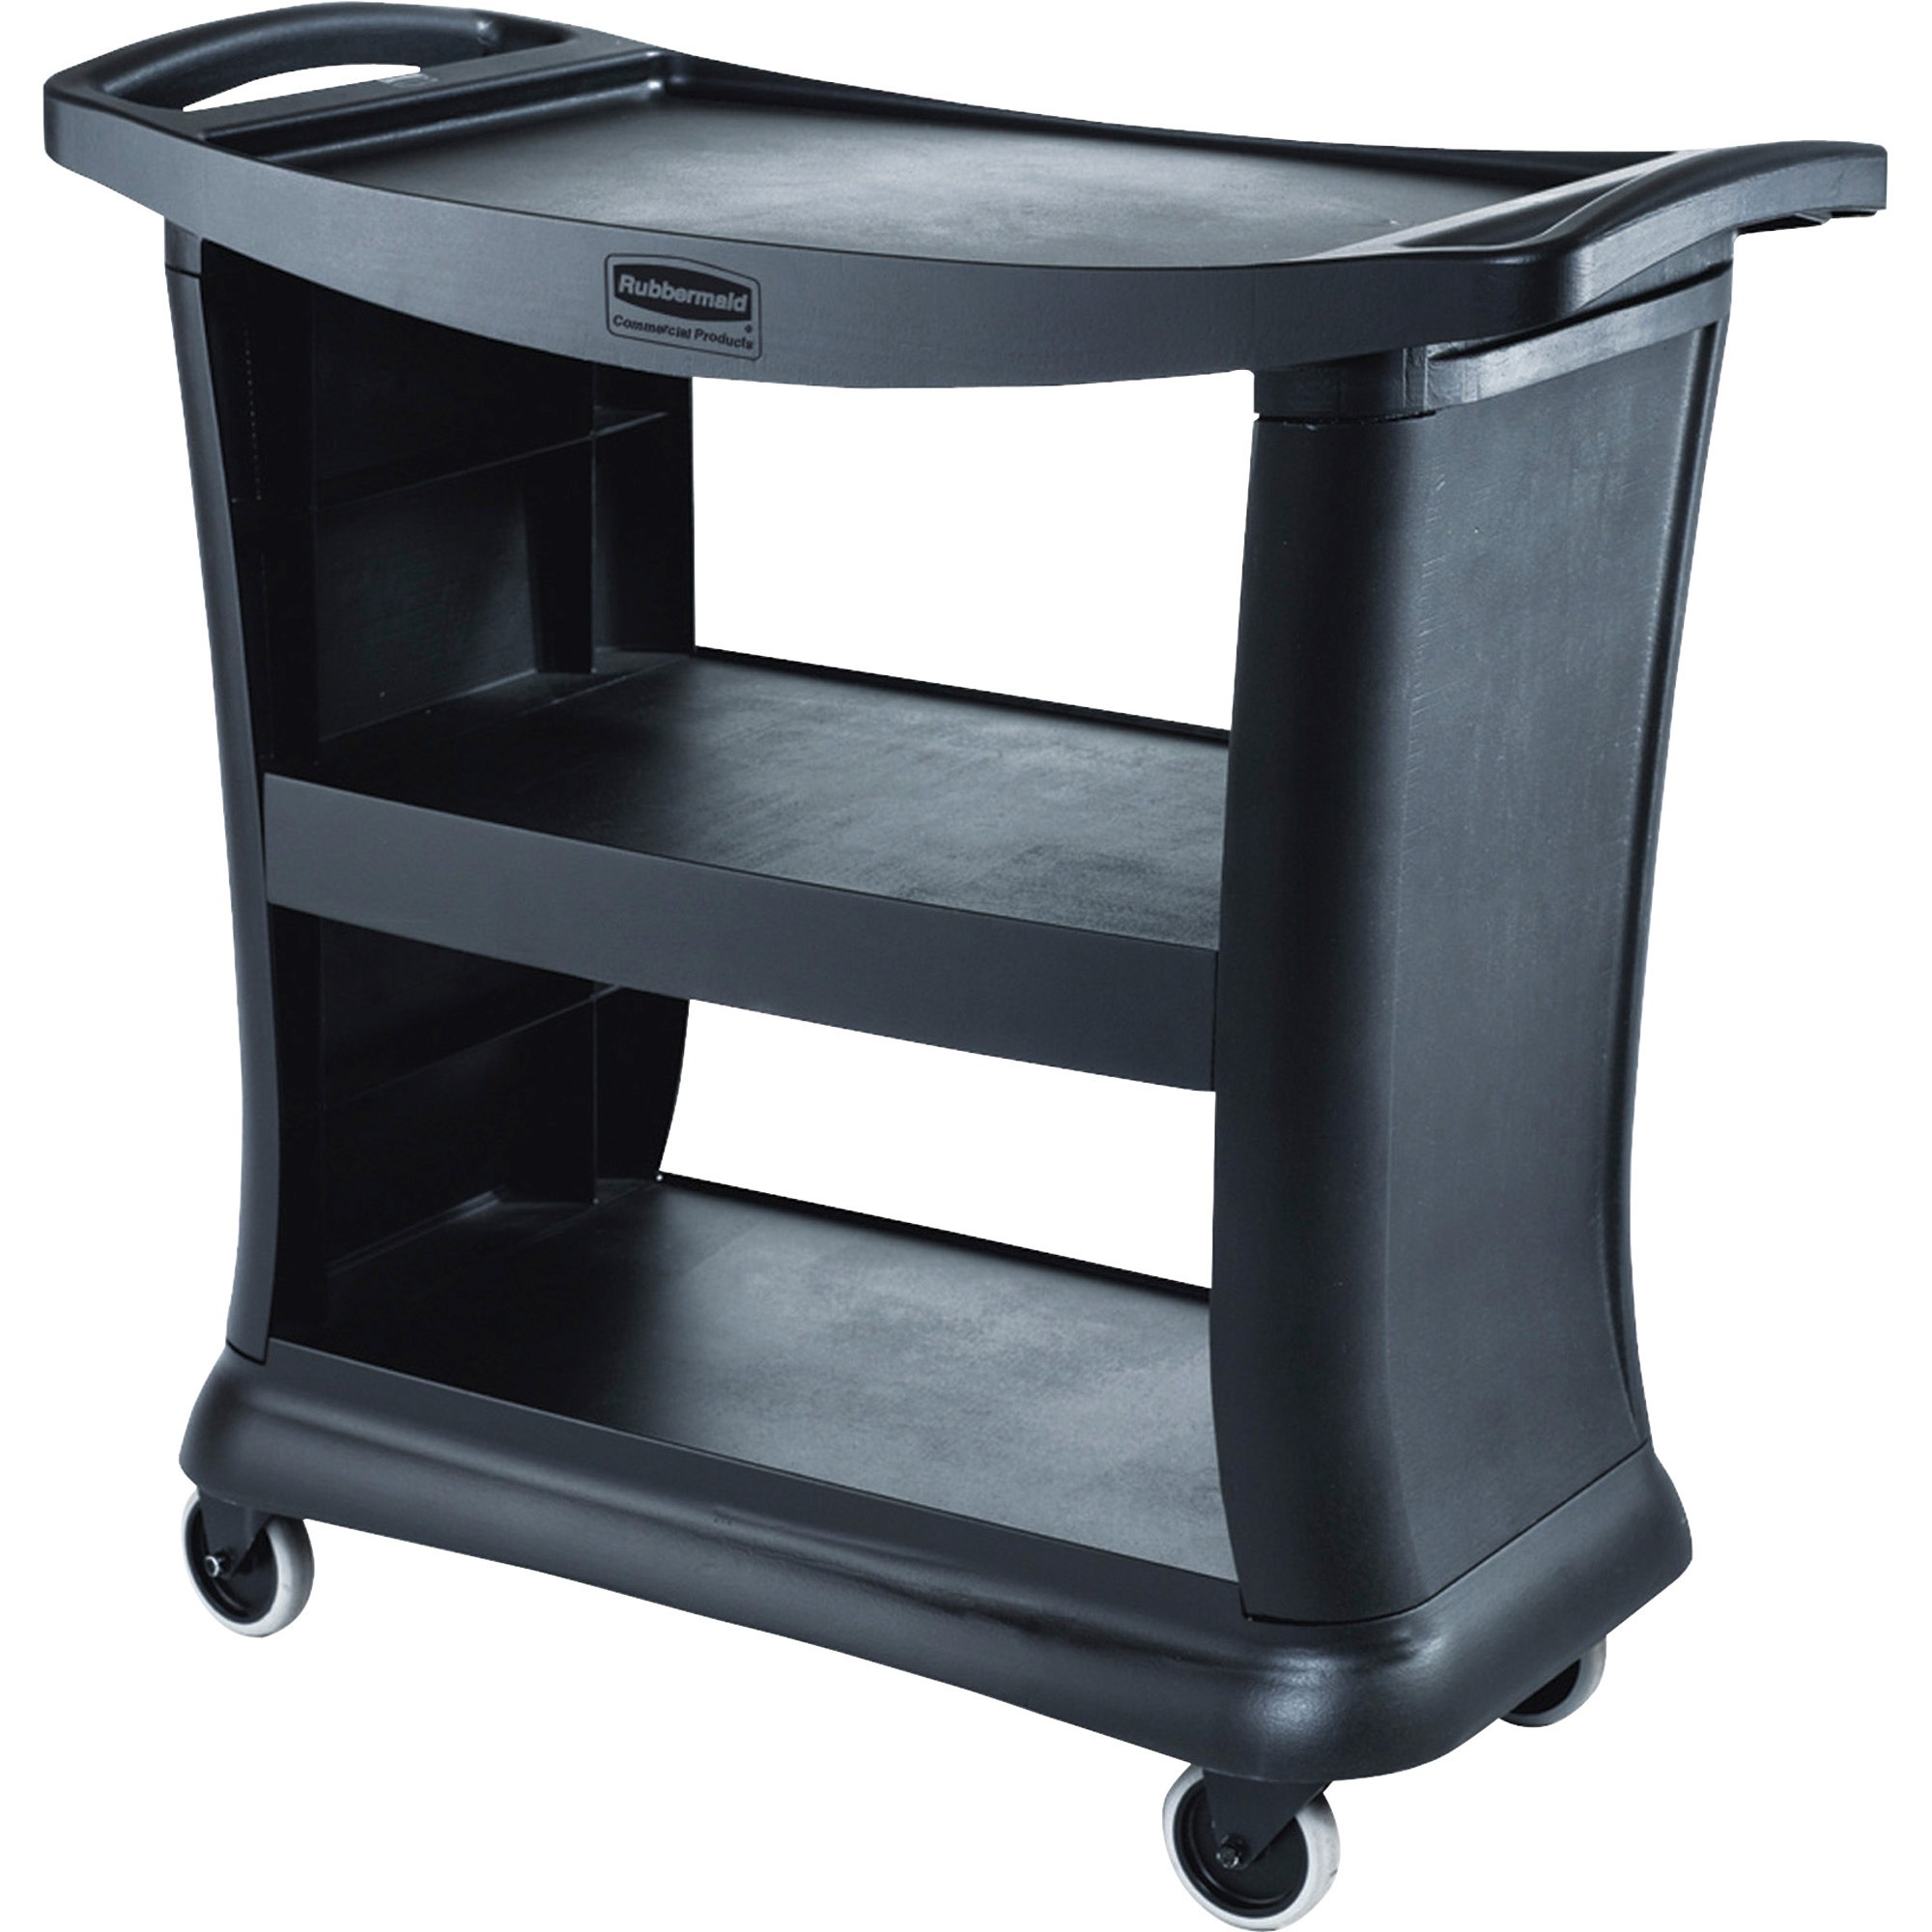 Rubbermaid Commercial, RCP9T6800, 9T68 Executive Service Cart, 1 Each, Black